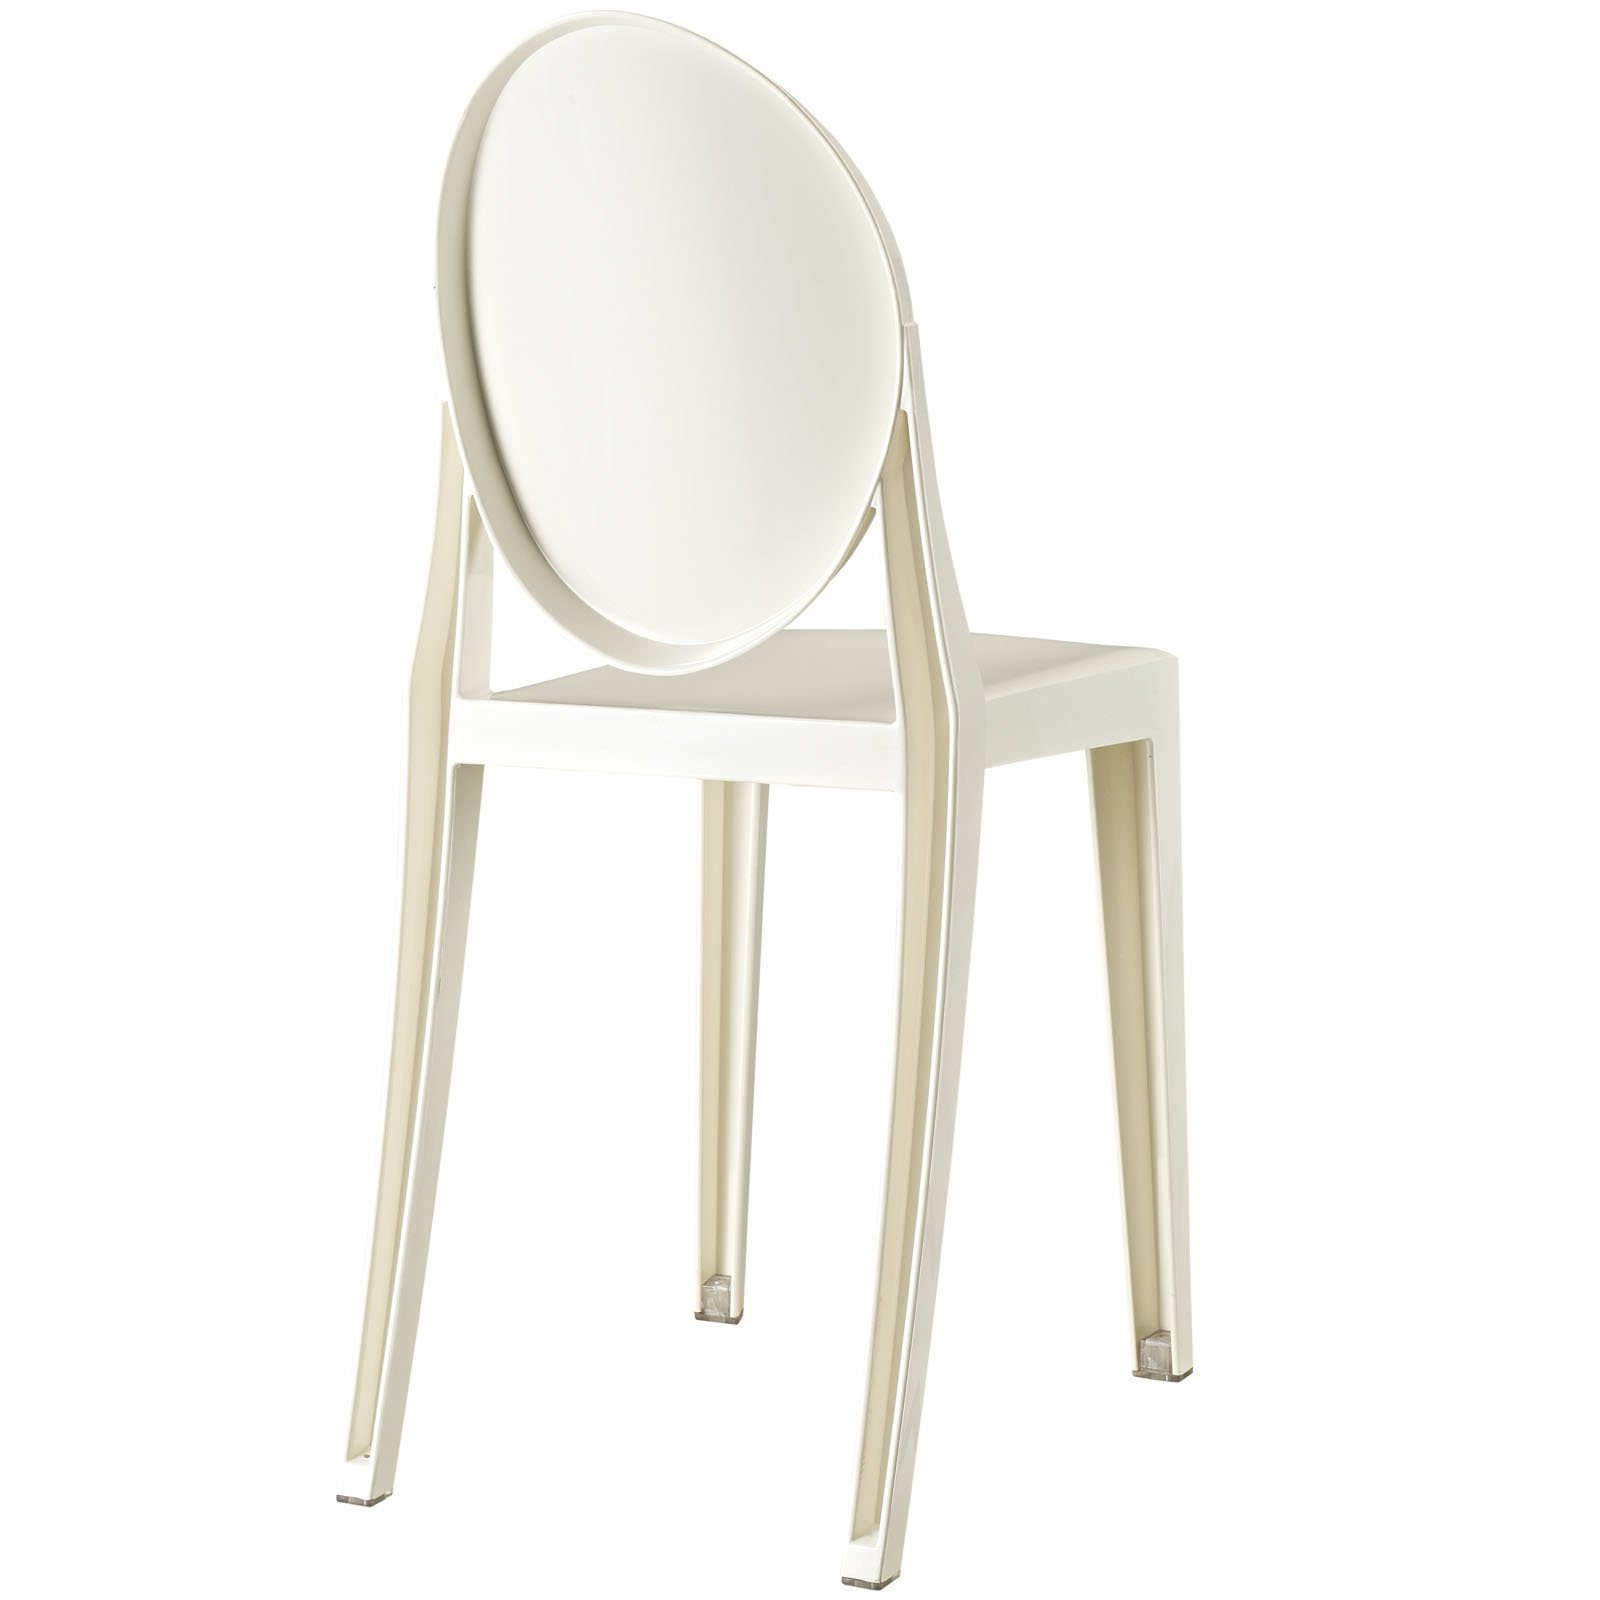 Lexmod Philippe Starck Style Victoria Ghost Chair In White